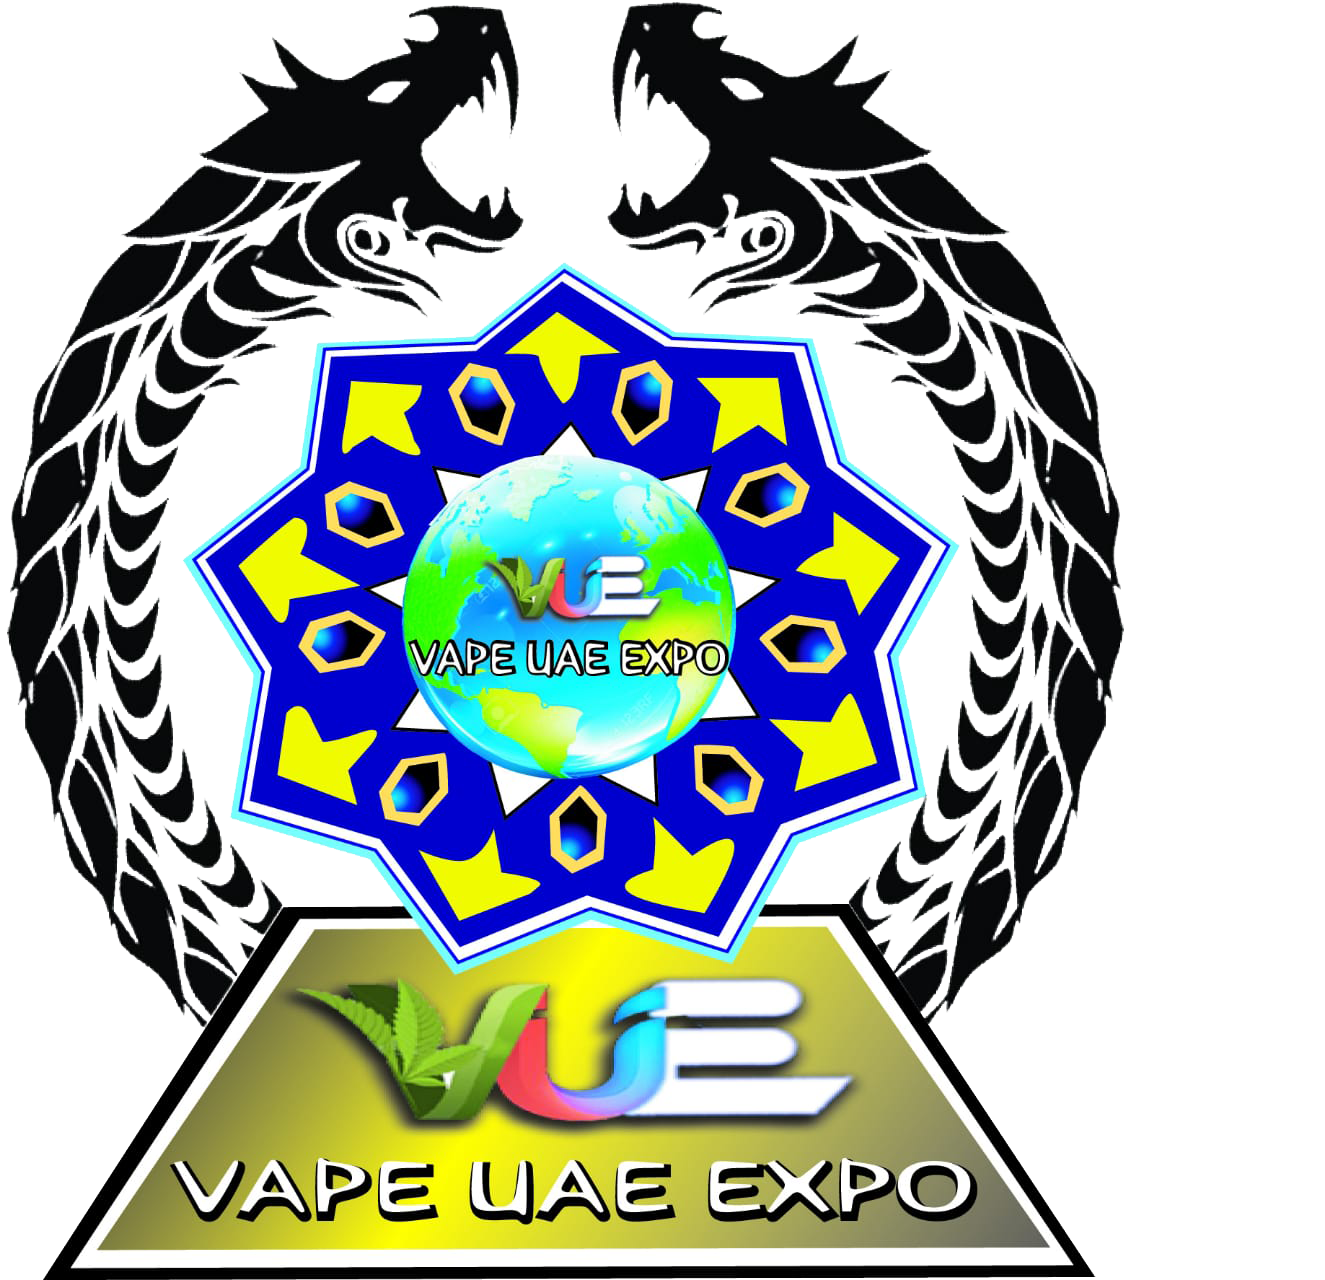 About Us – Vape Uae Expo